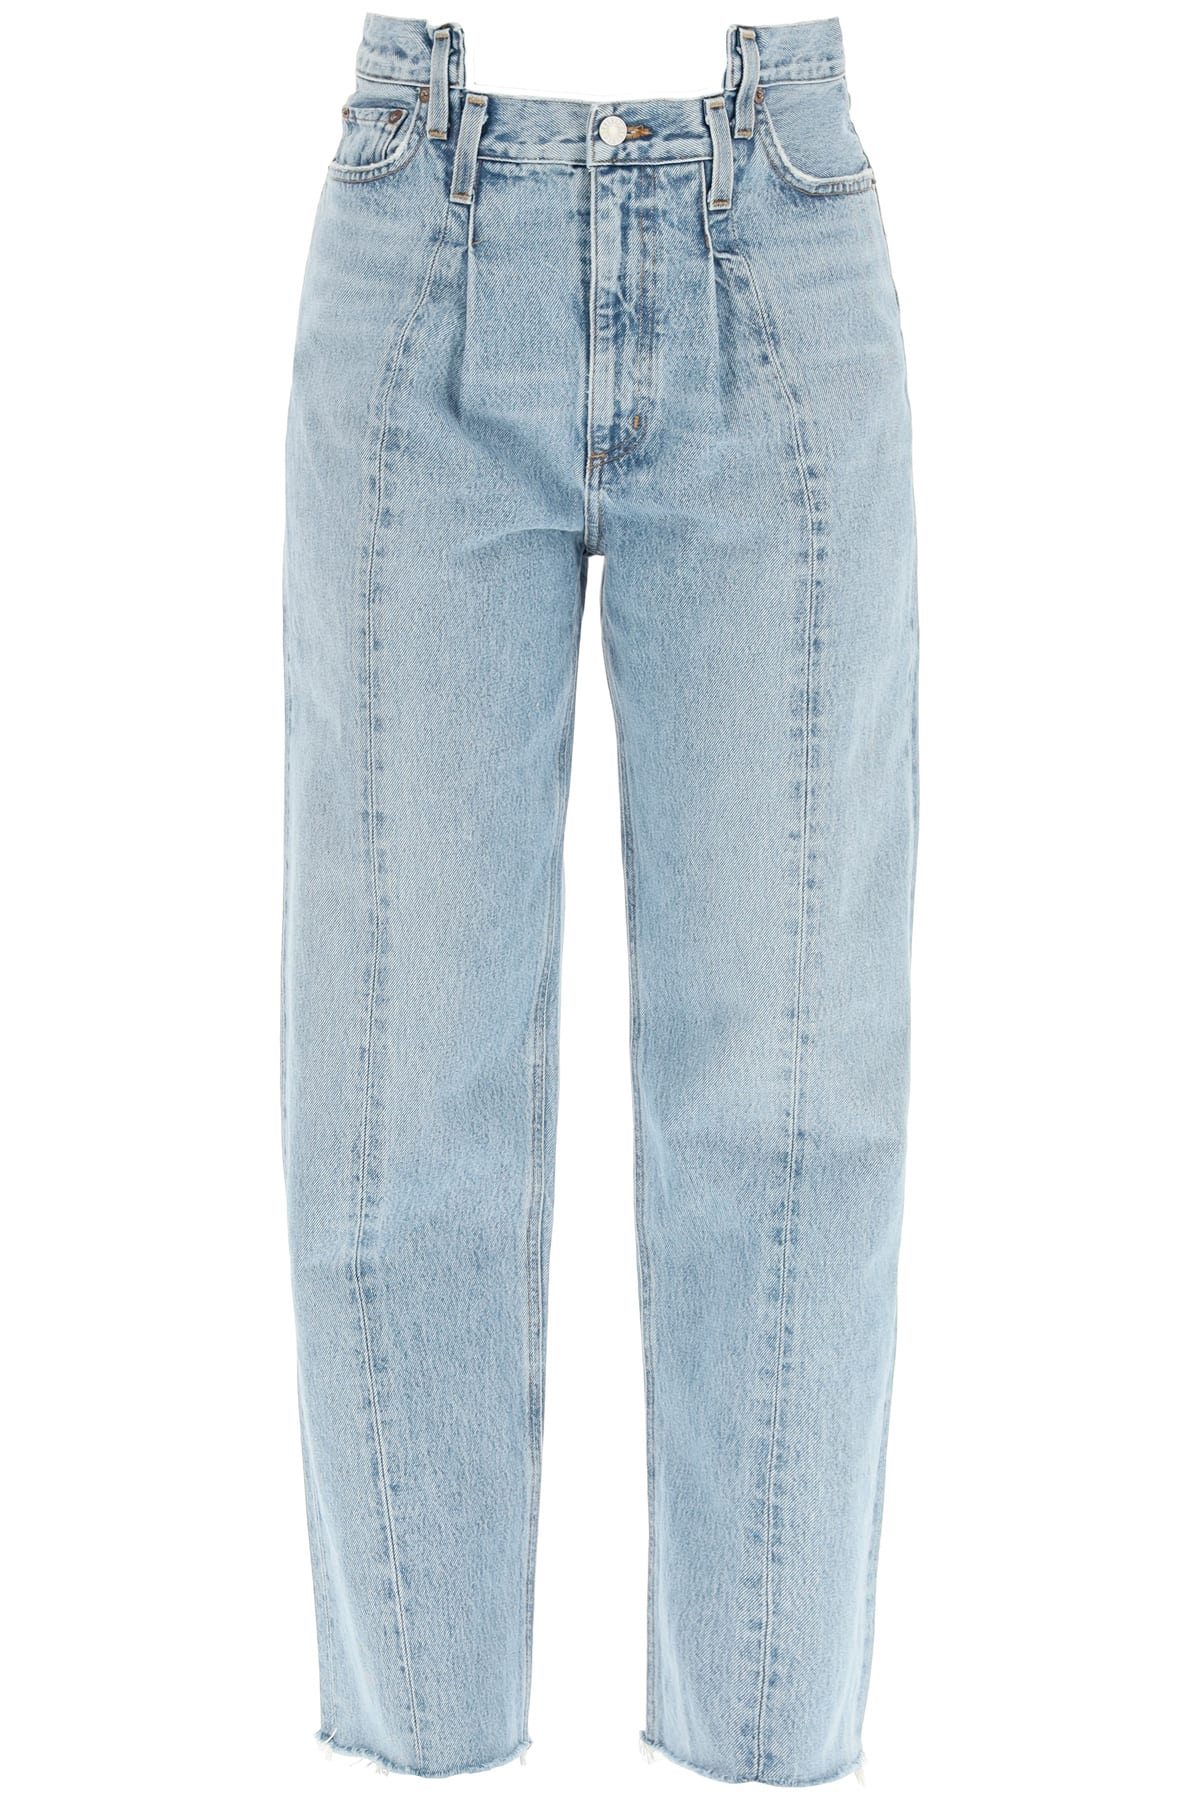 AGOLDE Angle Jeans